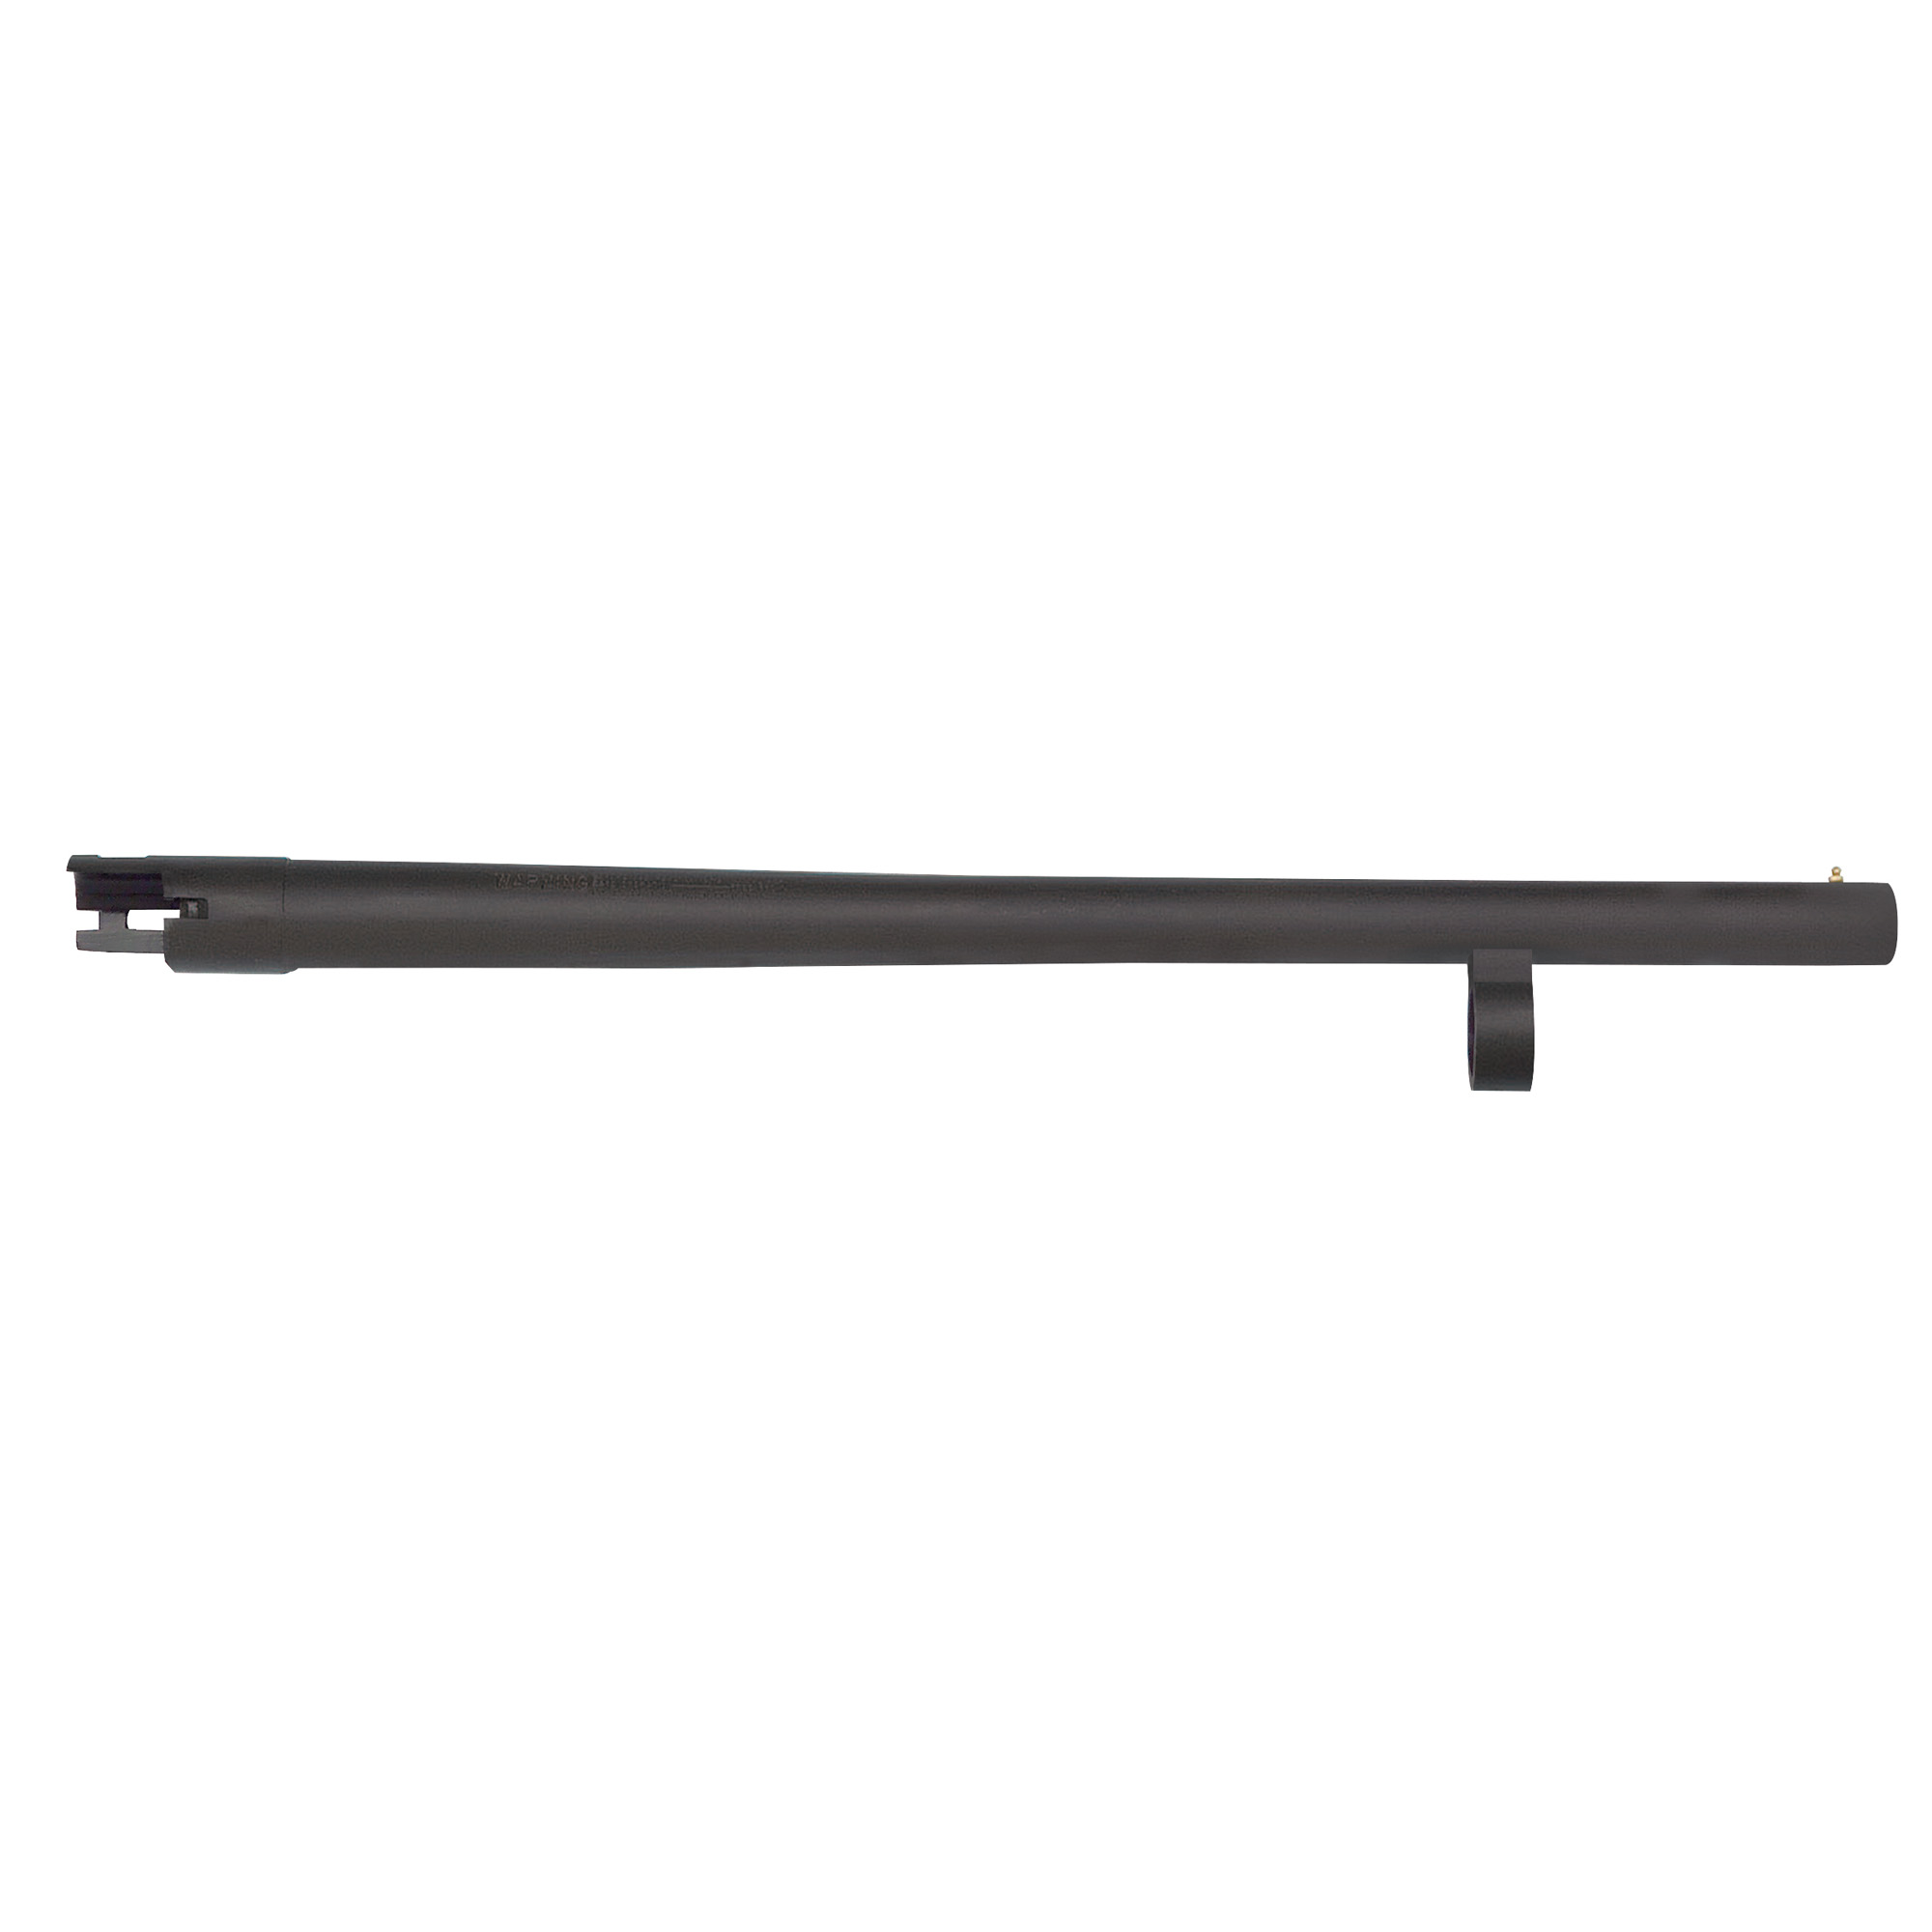 """Remington 870 12 Gauge"""" 18.5"""" Security barrel with bead sight"""" cylinder bore"""" and matte blued finish."""